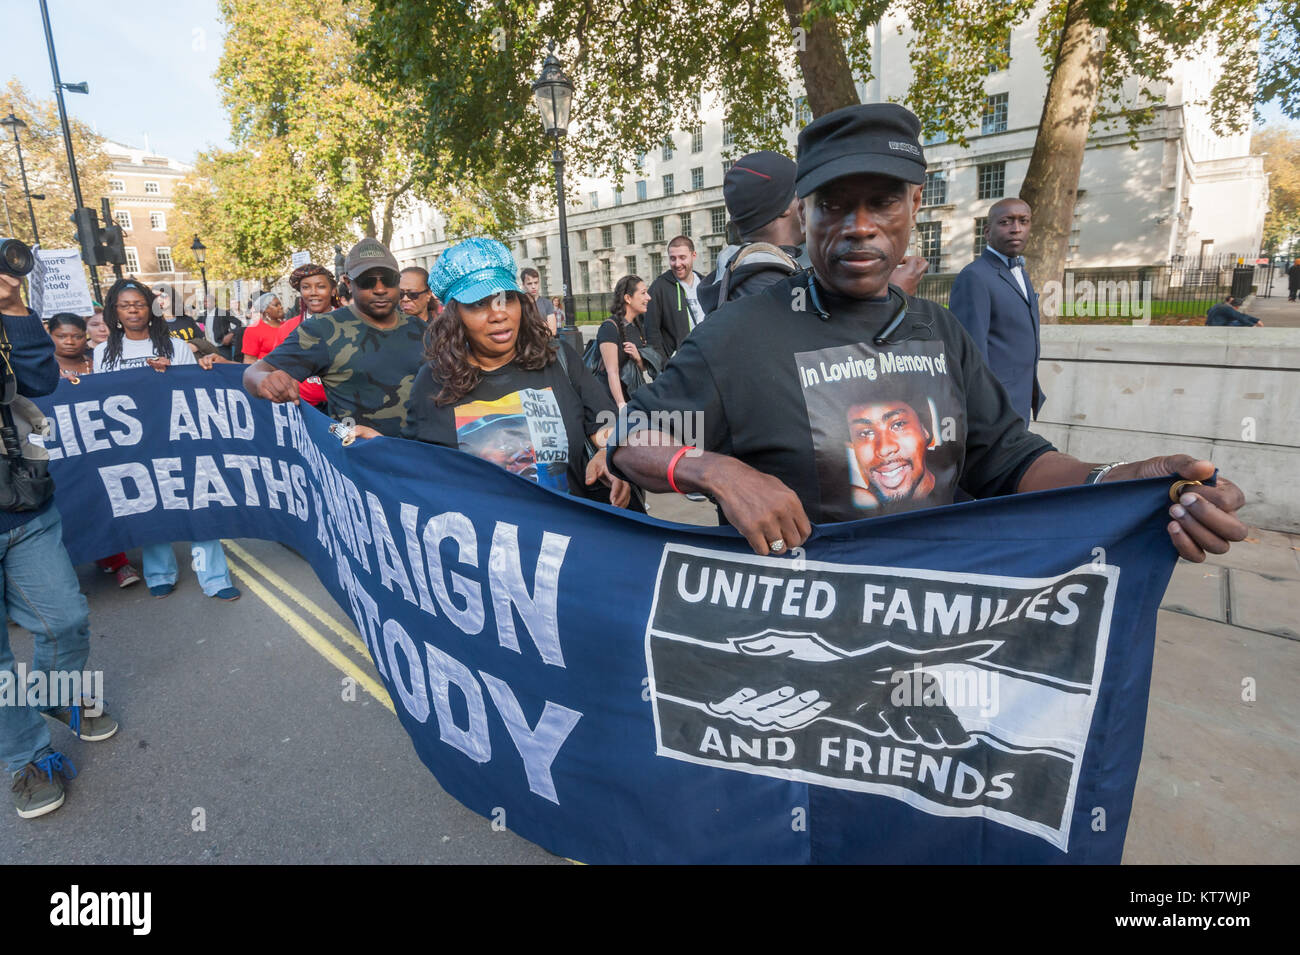 Cephus 'Uncle Bobby' Johnson and 'Aunty Betty' followed by Shaun Hall, the brother of Mark Duggan - Stock Image